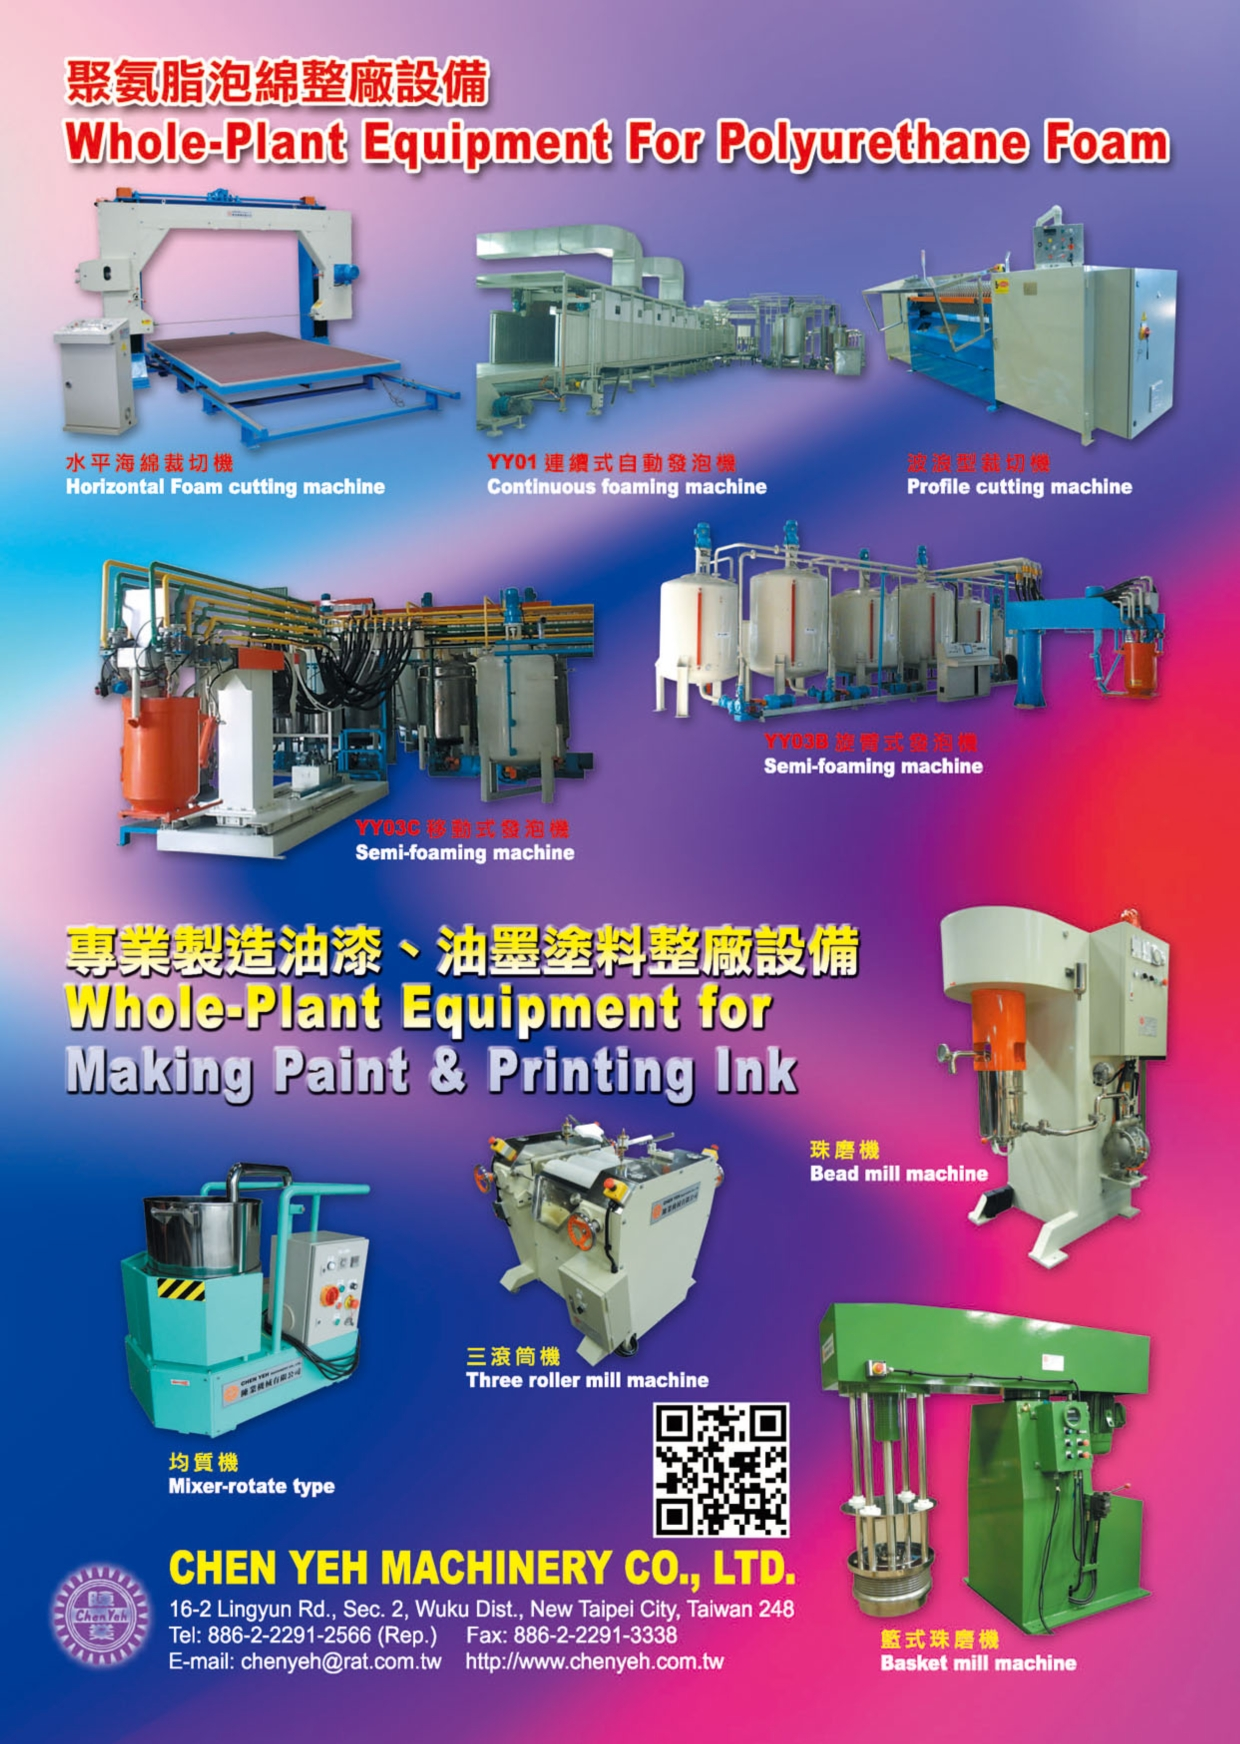 Who Makes Machinery in Taiwan CHEN YEH MACHINERY CO., LTD.